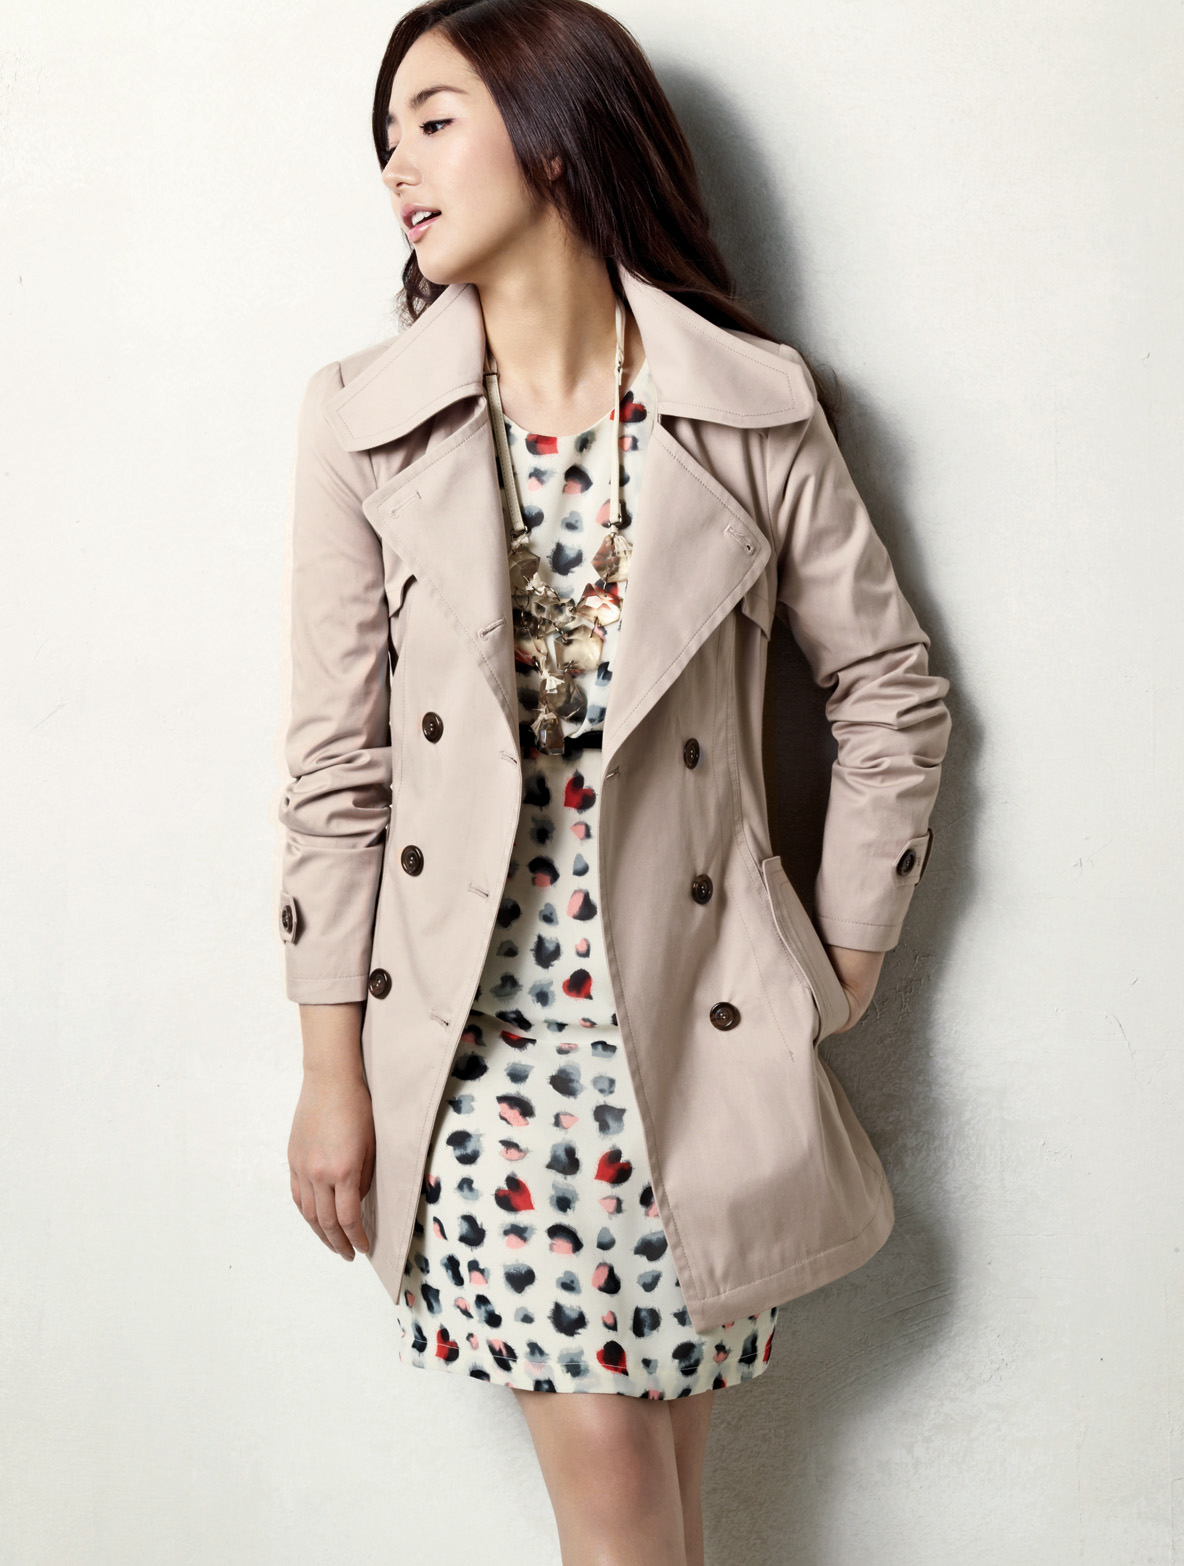 Park Min Young Compagna Spring 2011 a Asia 24 7